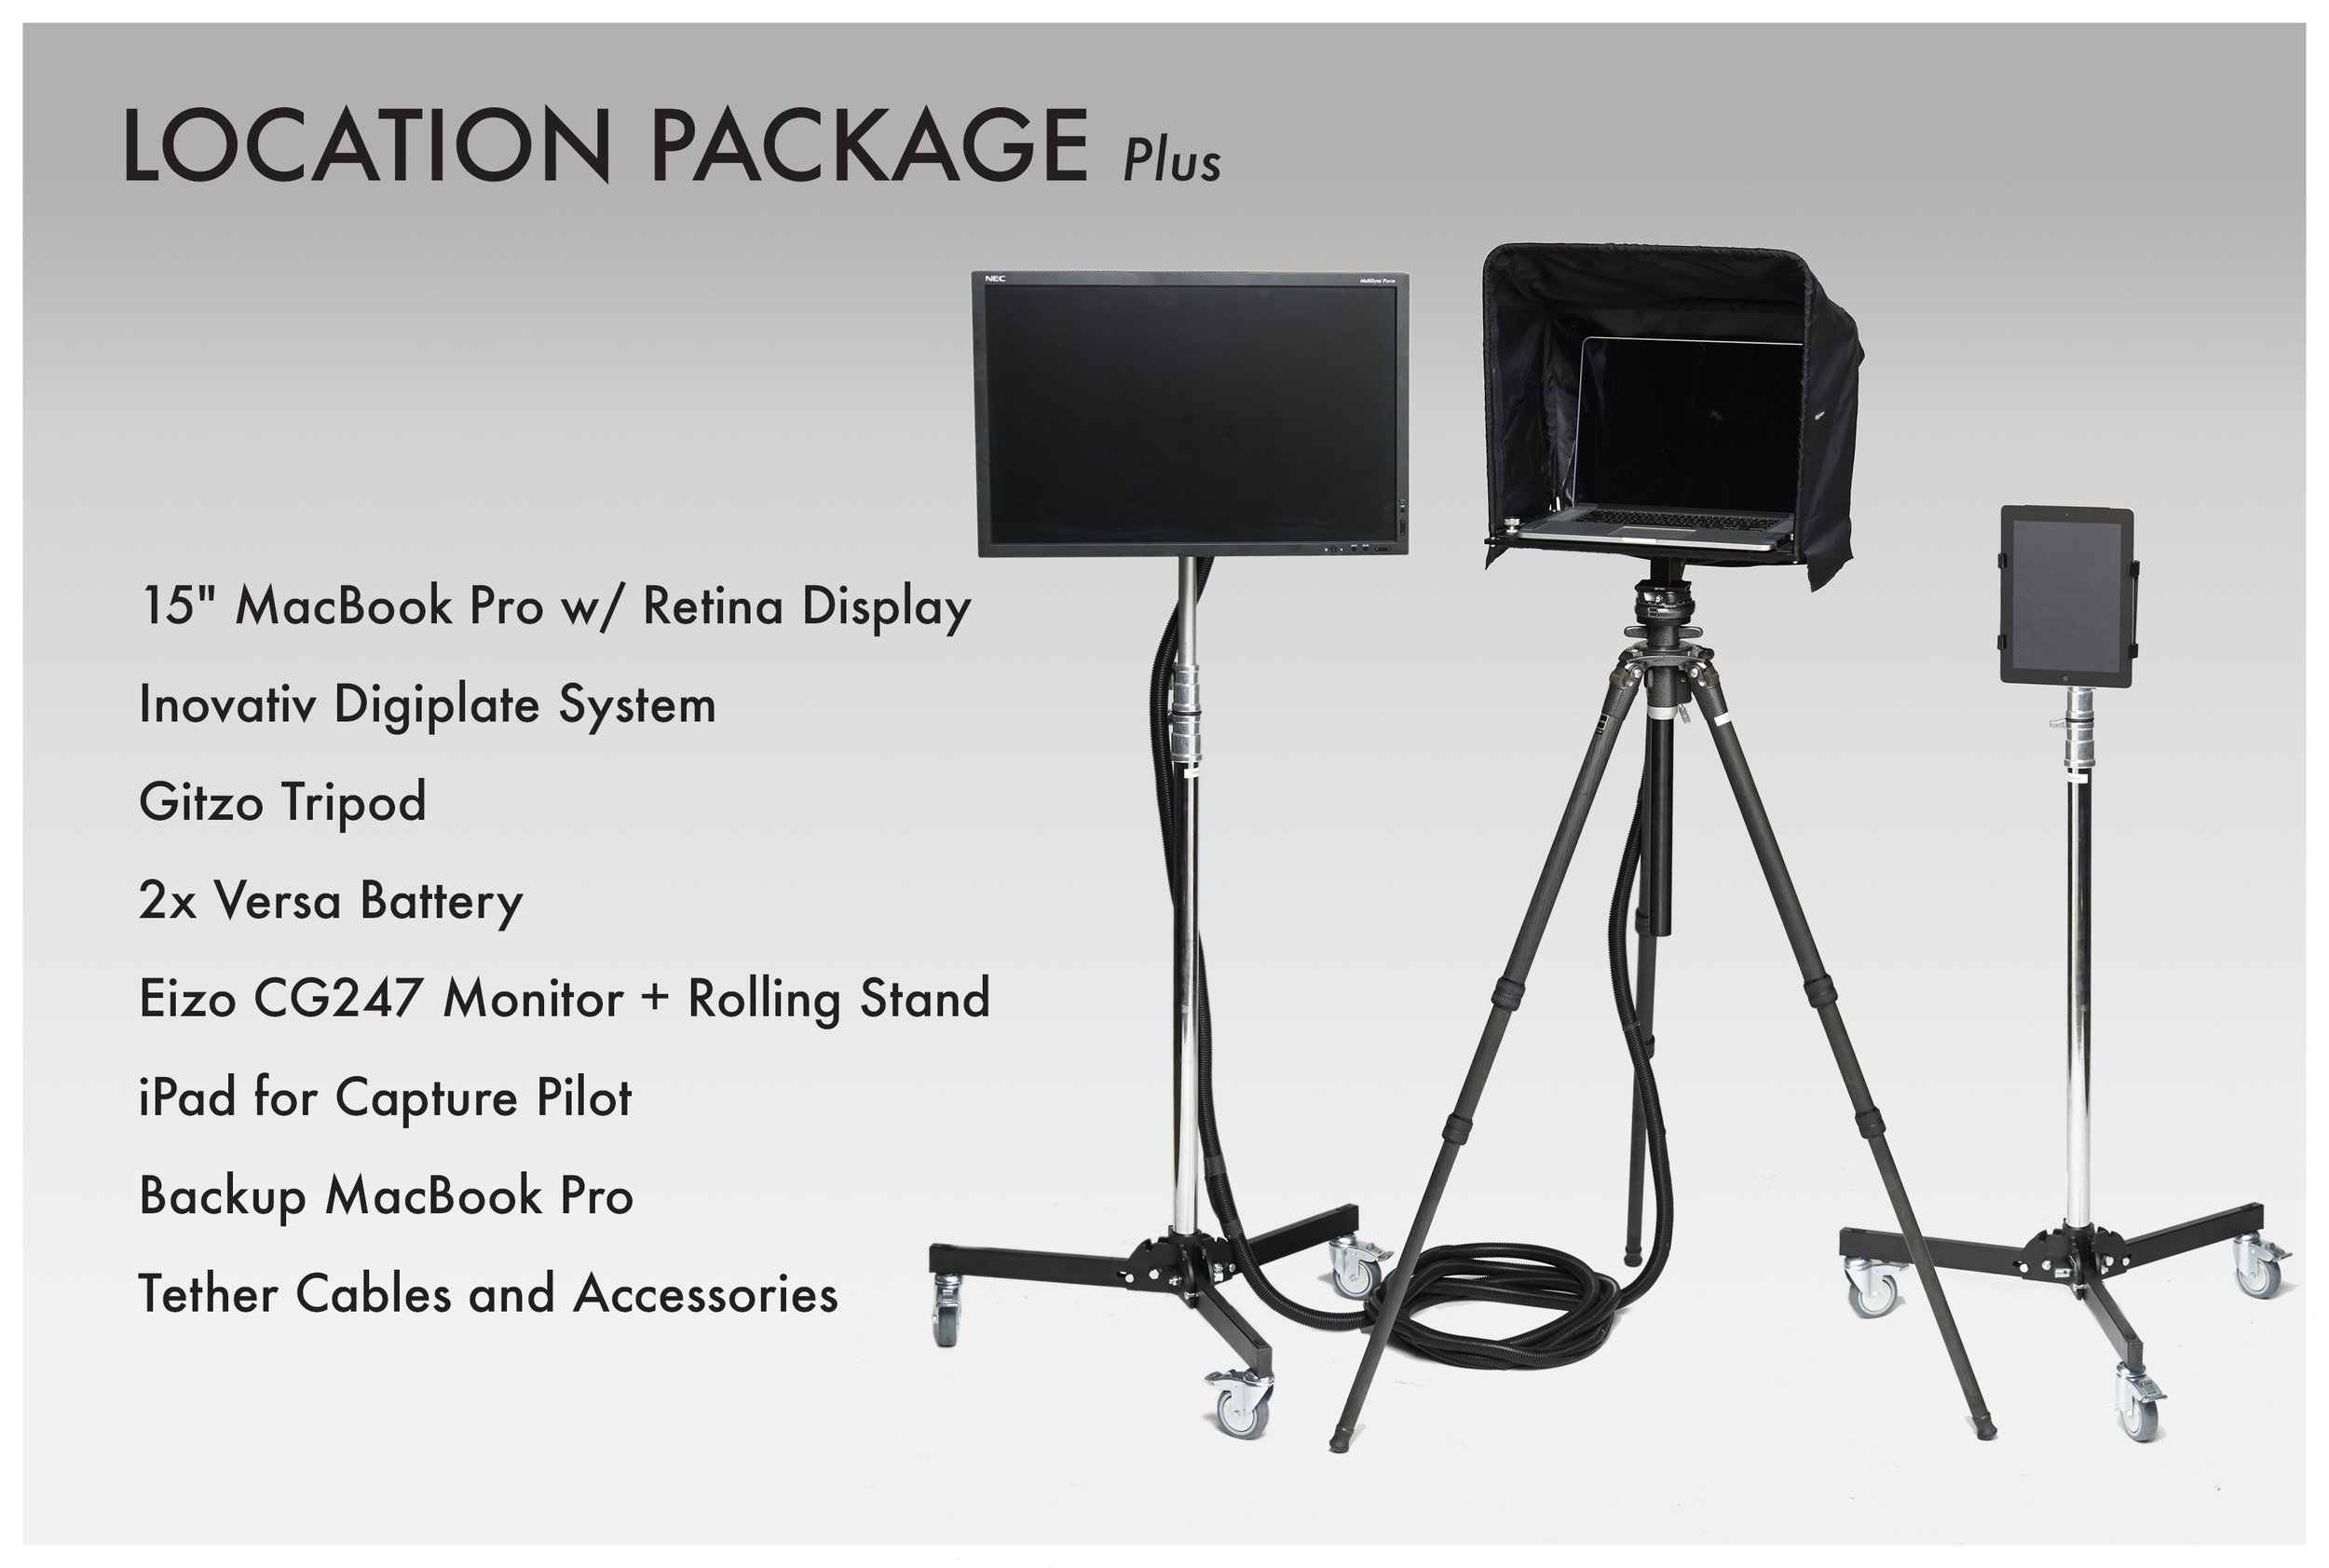 Location Package Plus